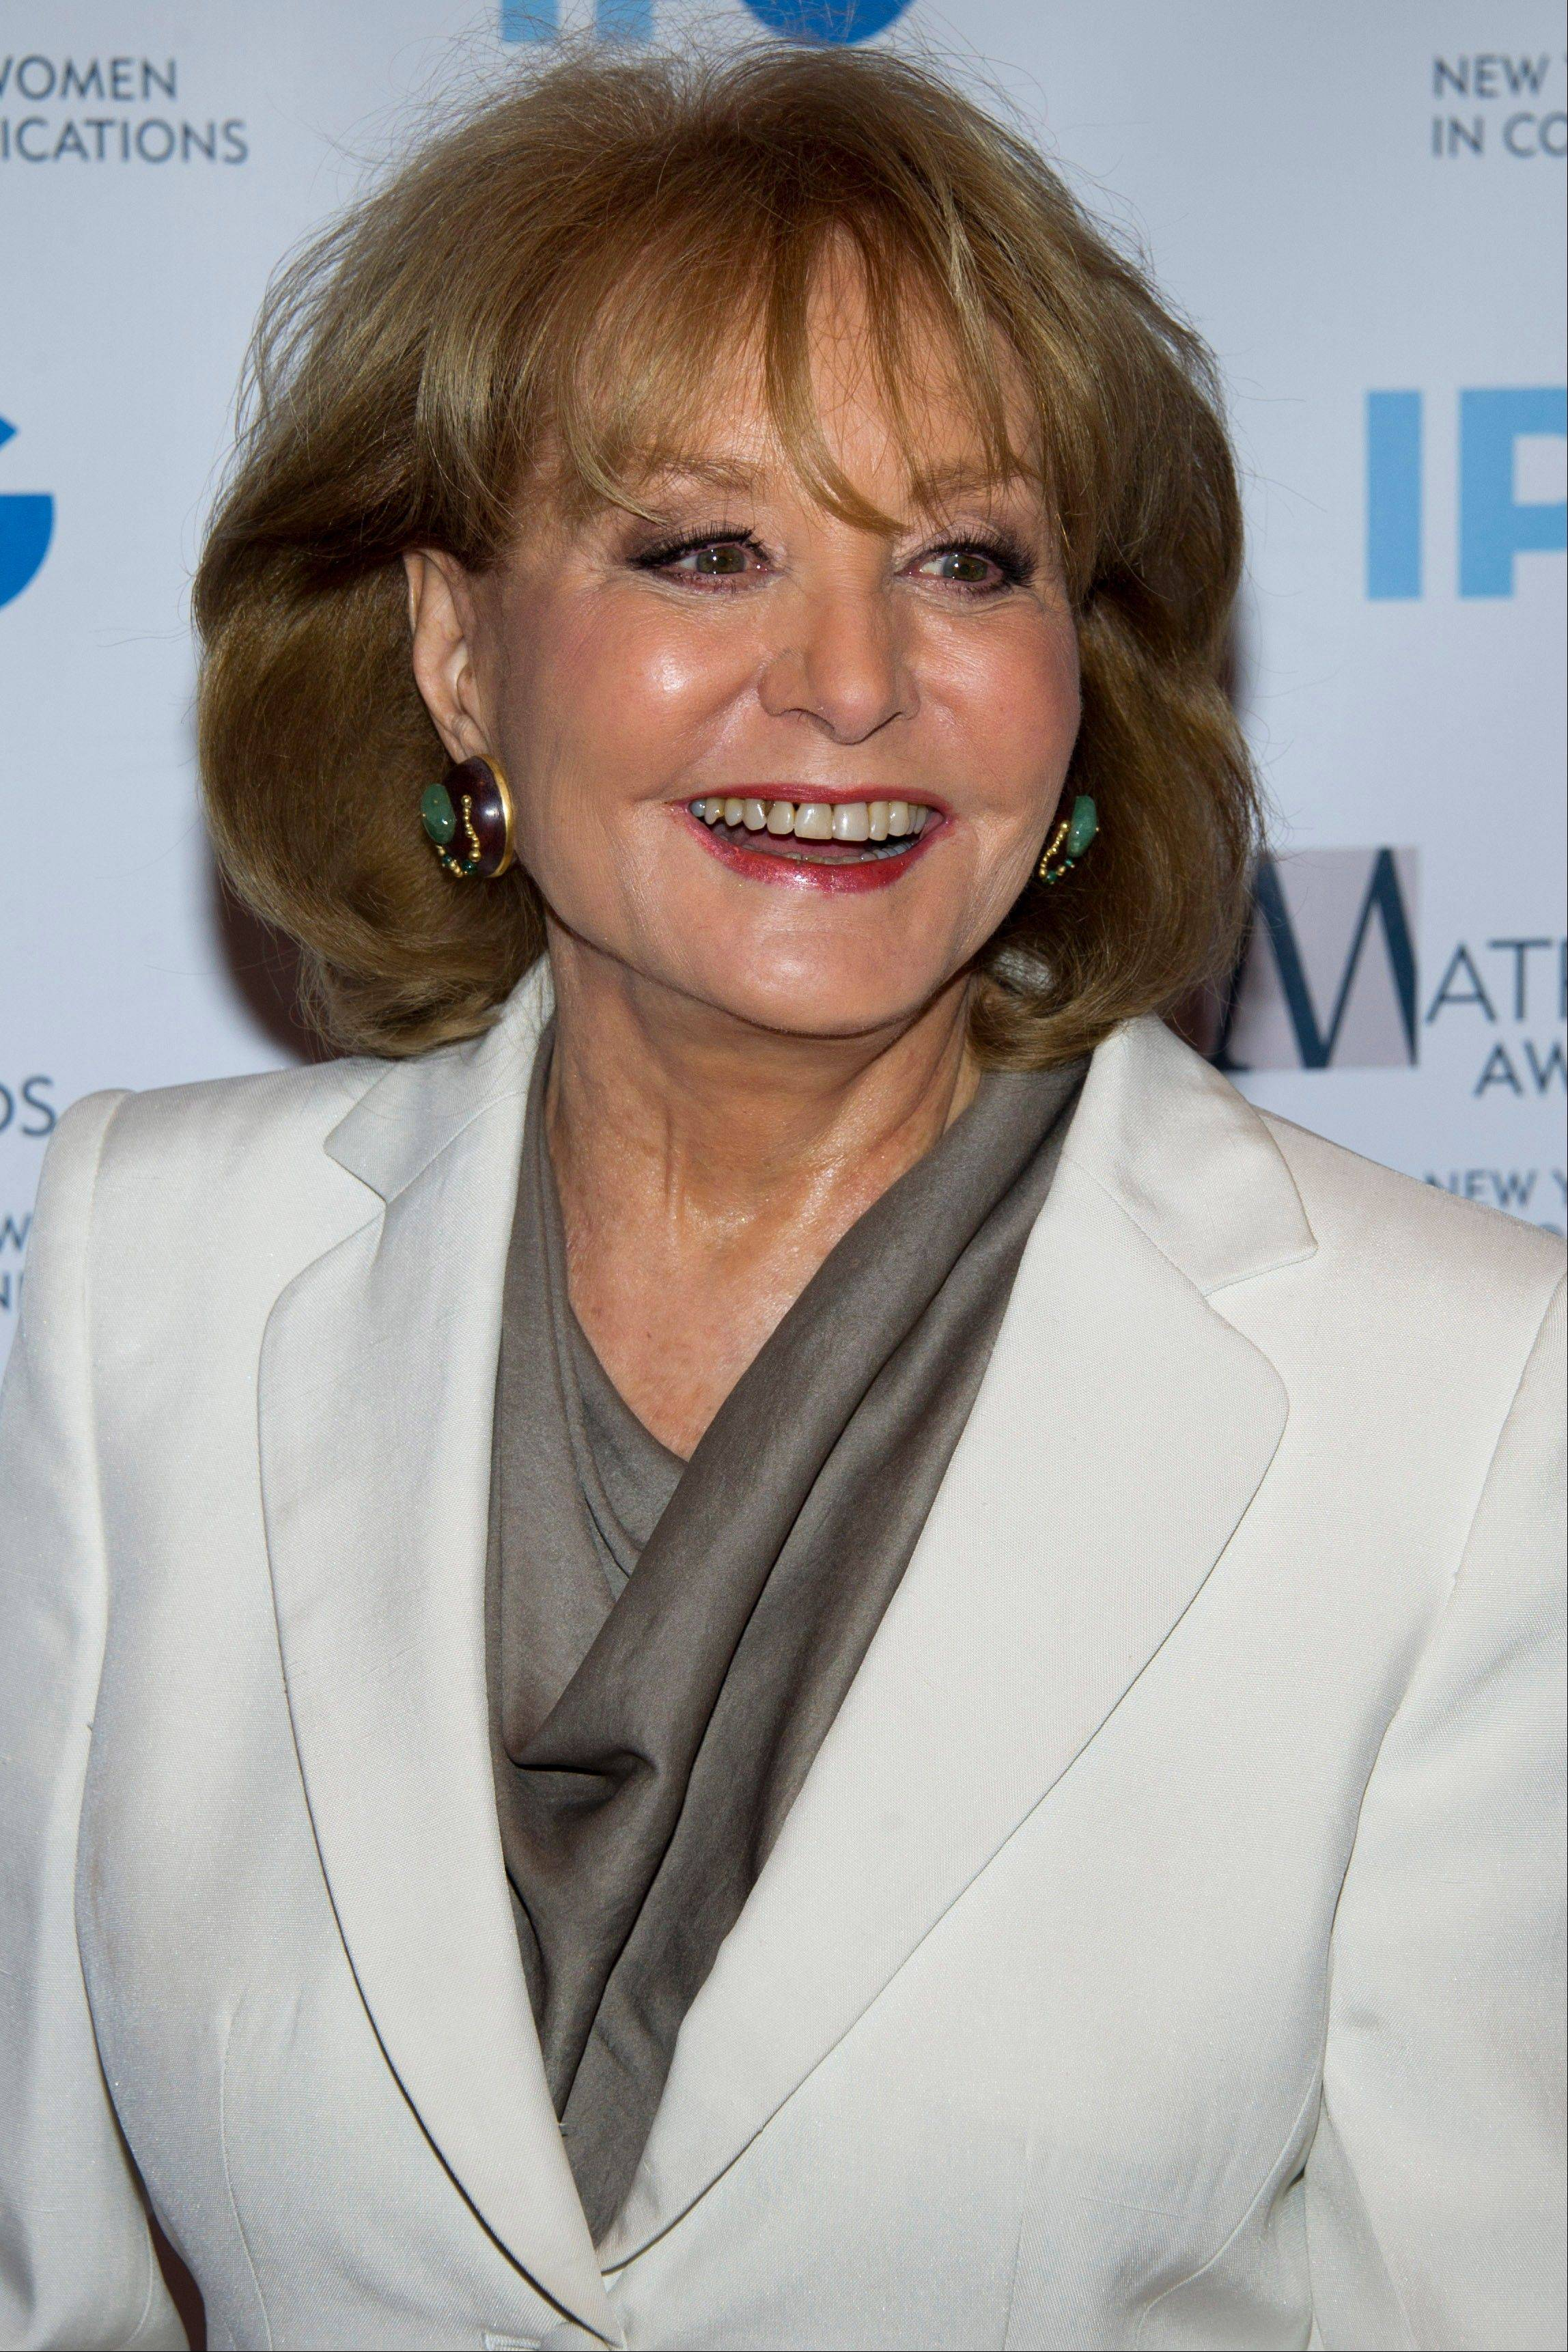 Barbara Walters plans to retire next year, ending a television career that began more than a half century ago and made her a trailblazer in news and daytime TV.